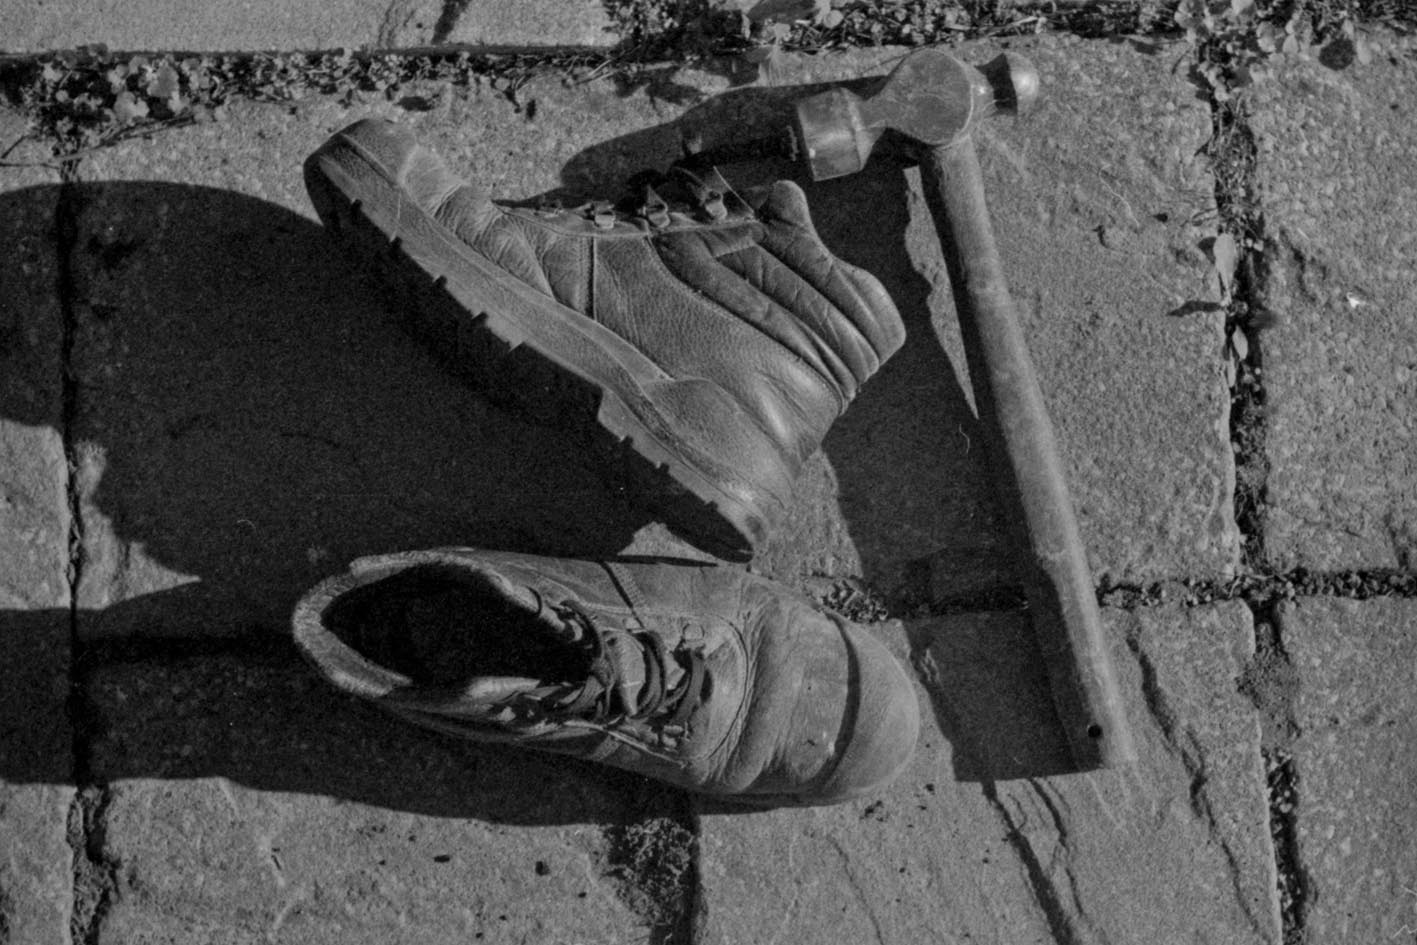 Shoes and spanner LARGE JPEG.jpg